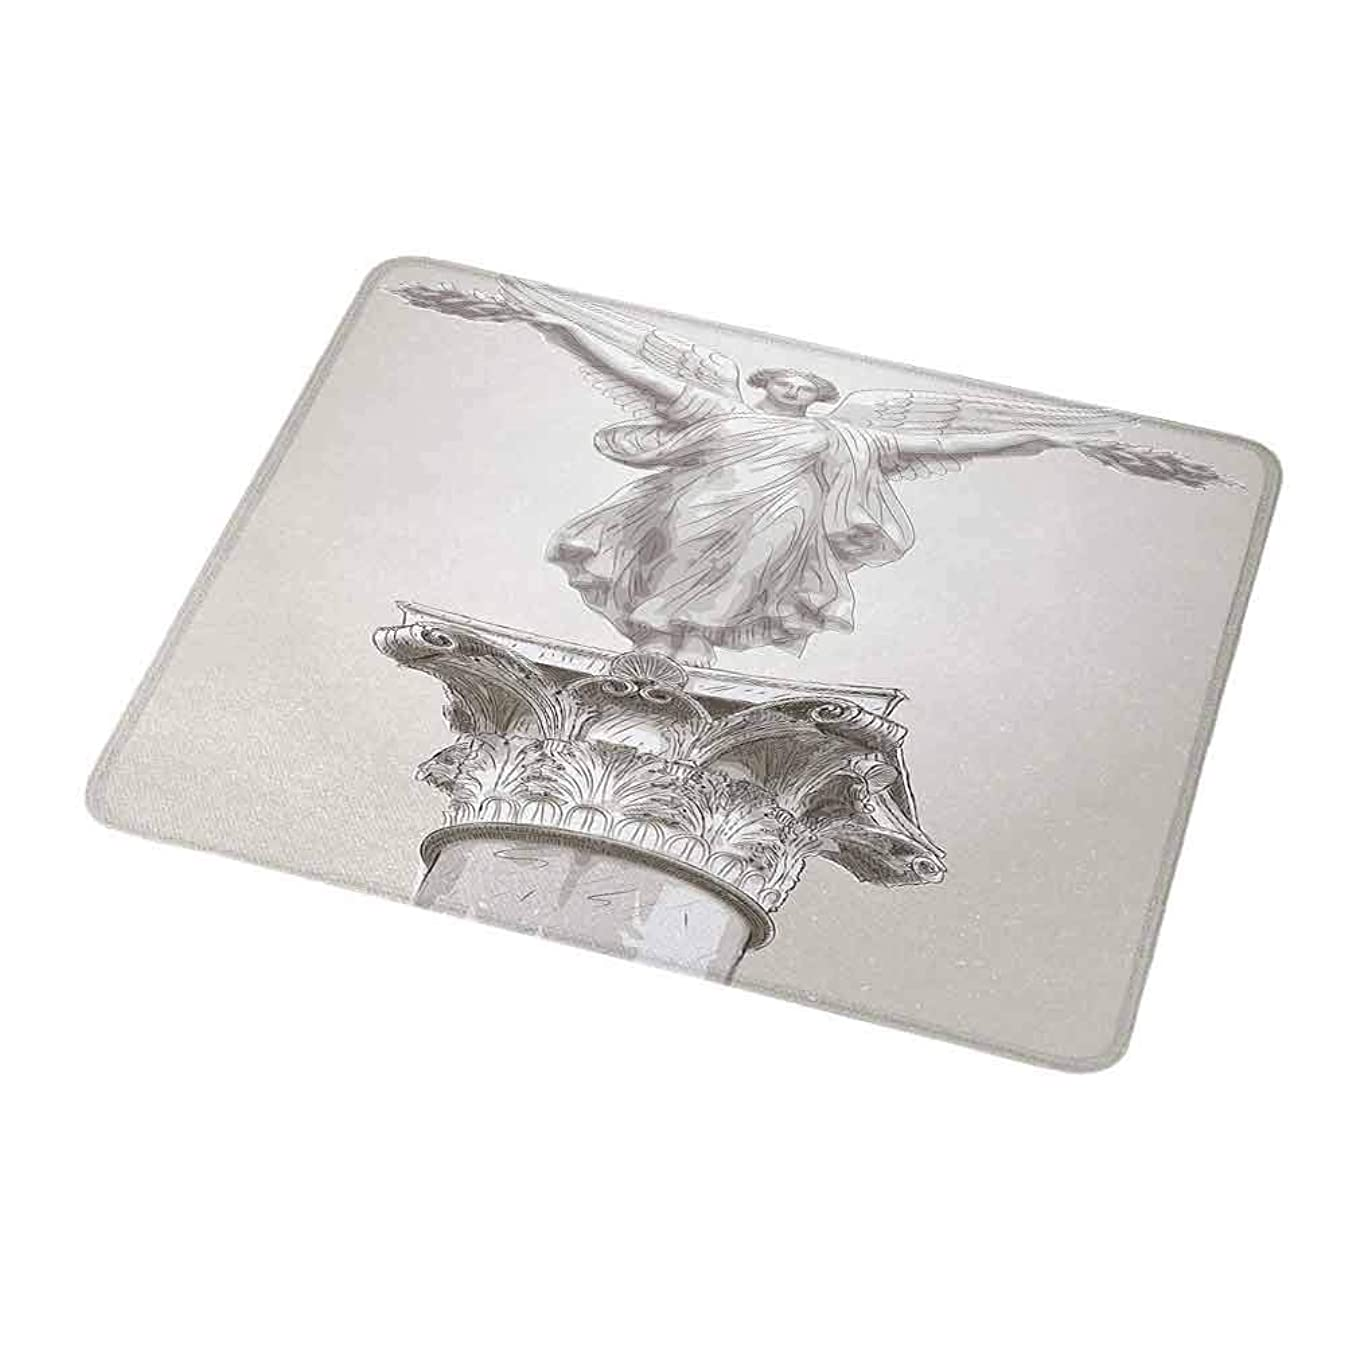 Gaming Mouse Pad Custom Sculptures,Angel Greek Goddess Muse Statue on Neoclassic Pillars Mythology Ancient Relic Print,White,Non-Slip Personalized Rectangle Mouse pad 9.8